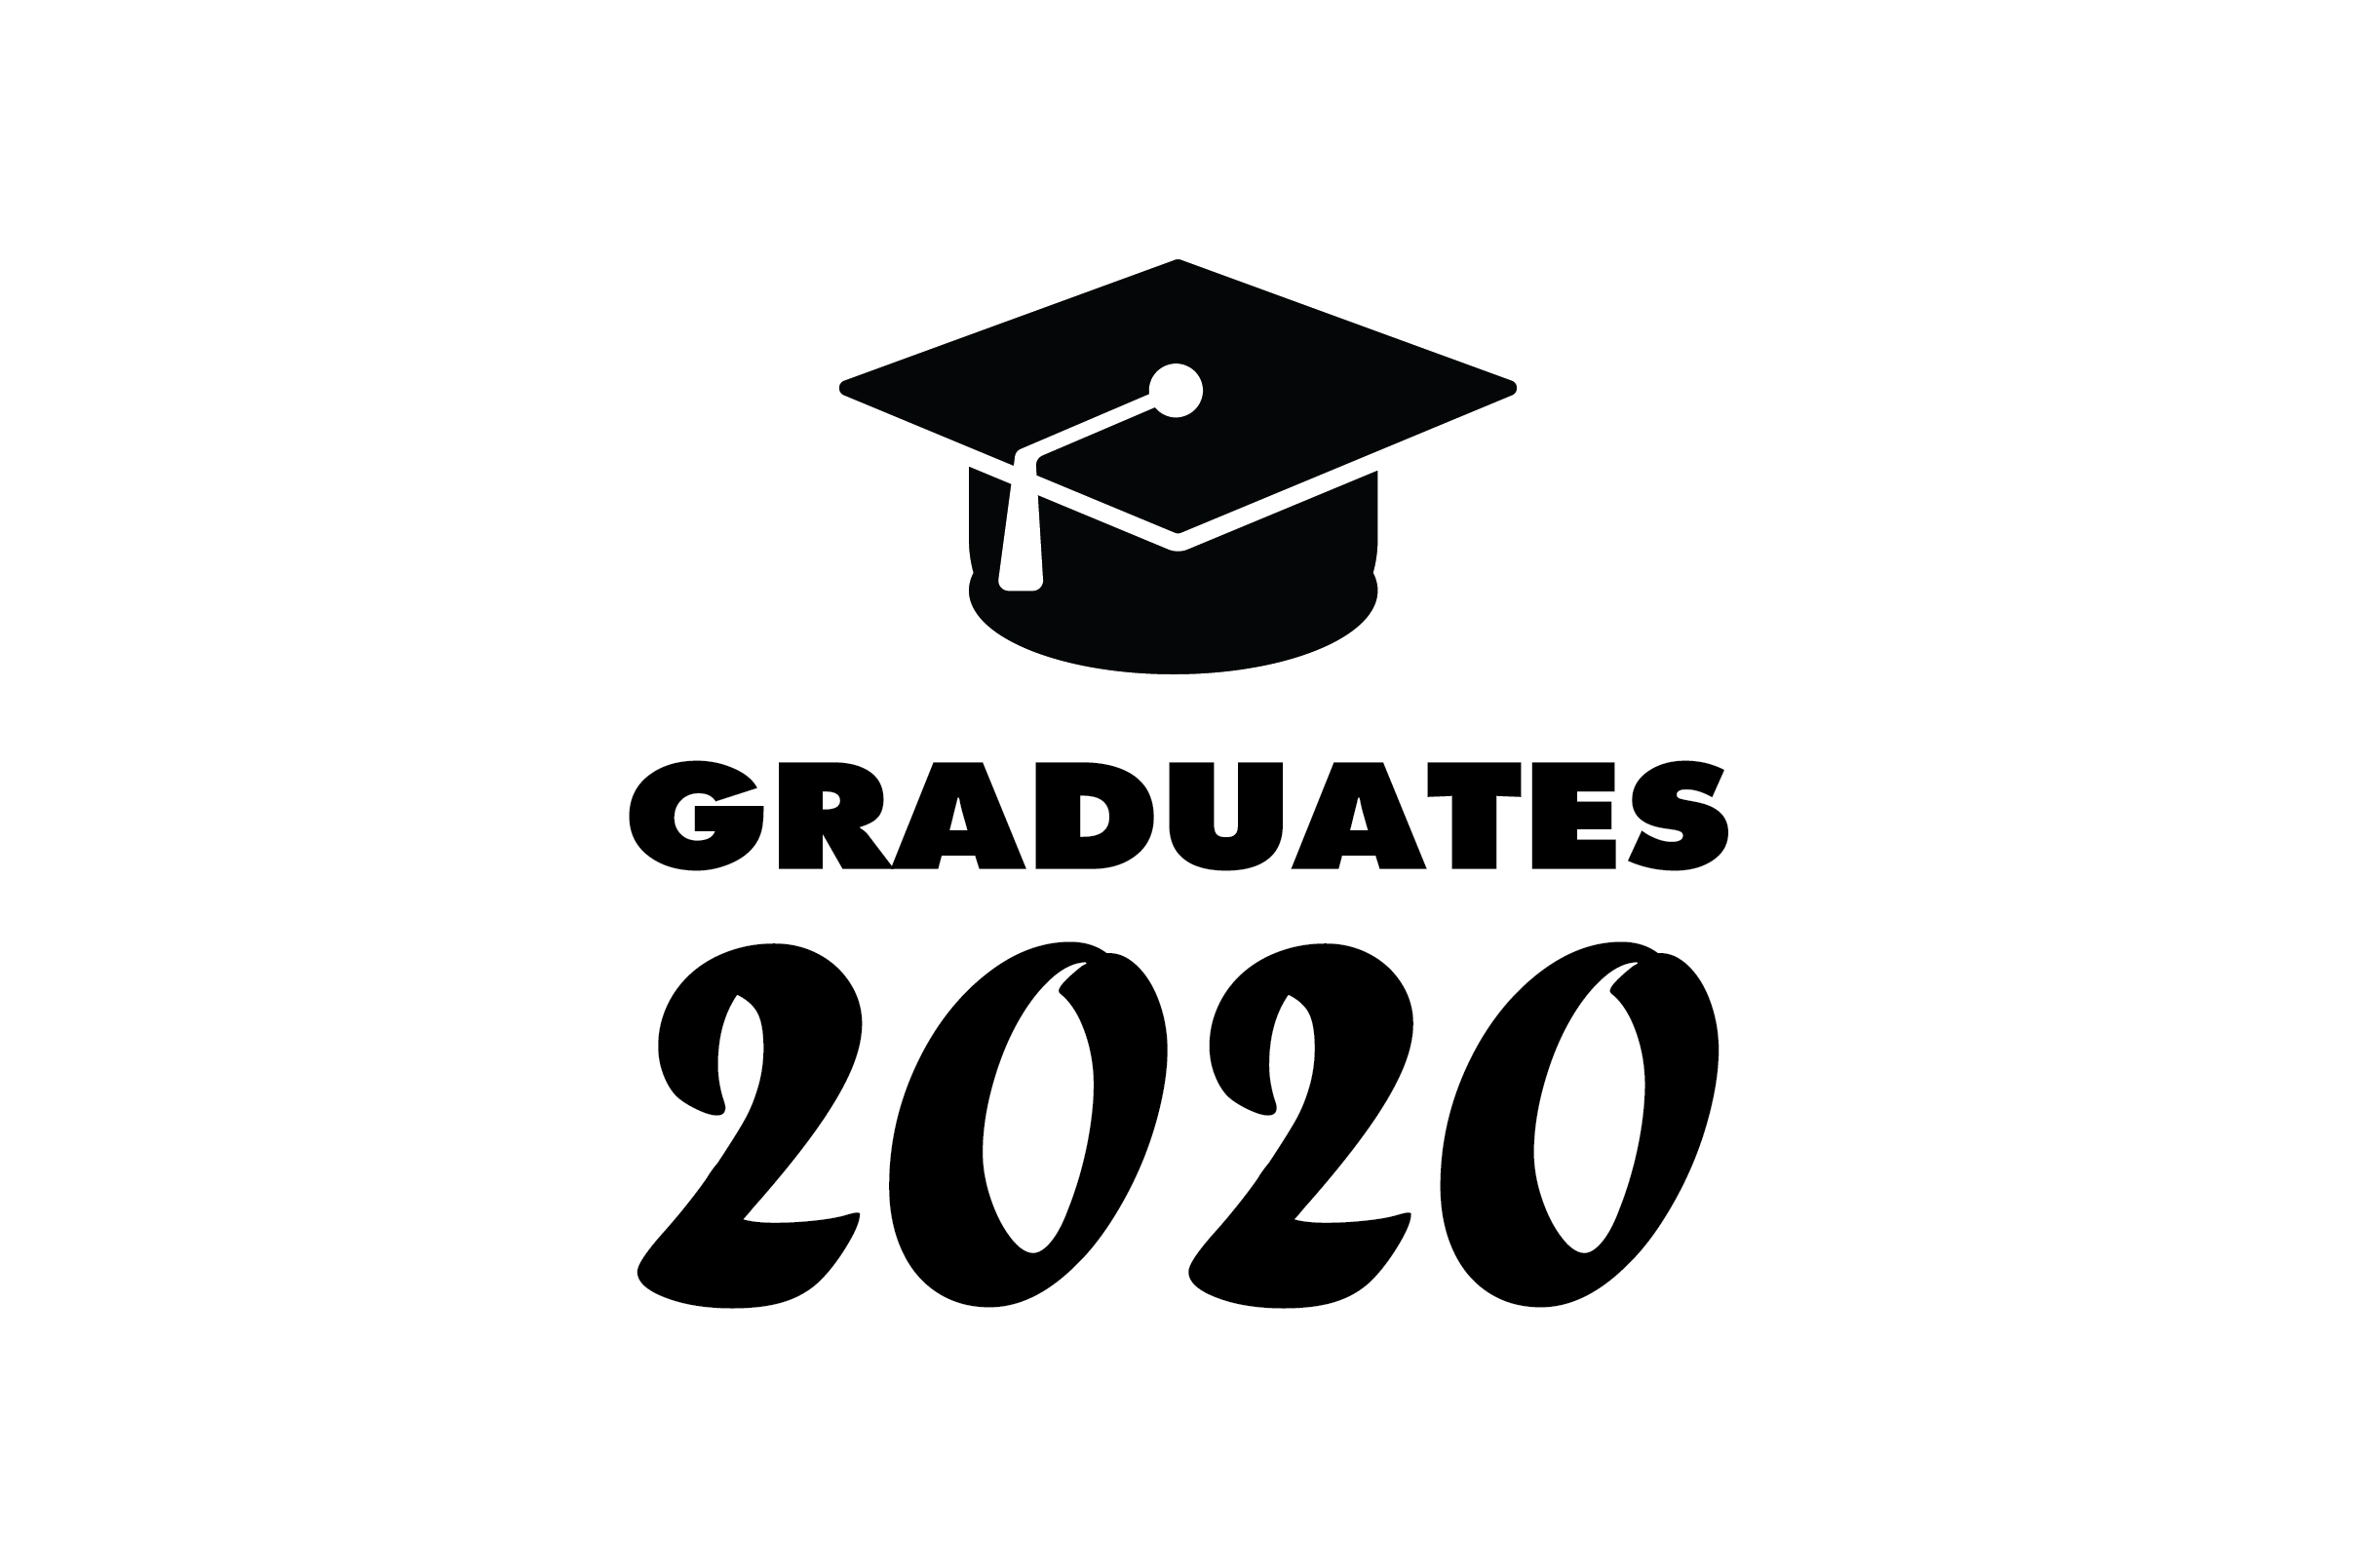 Download Free Graduates 2020 Graphic By Fauzidea Creative Fabrica for Cricut Explore, Silhouette and other cutting machines.